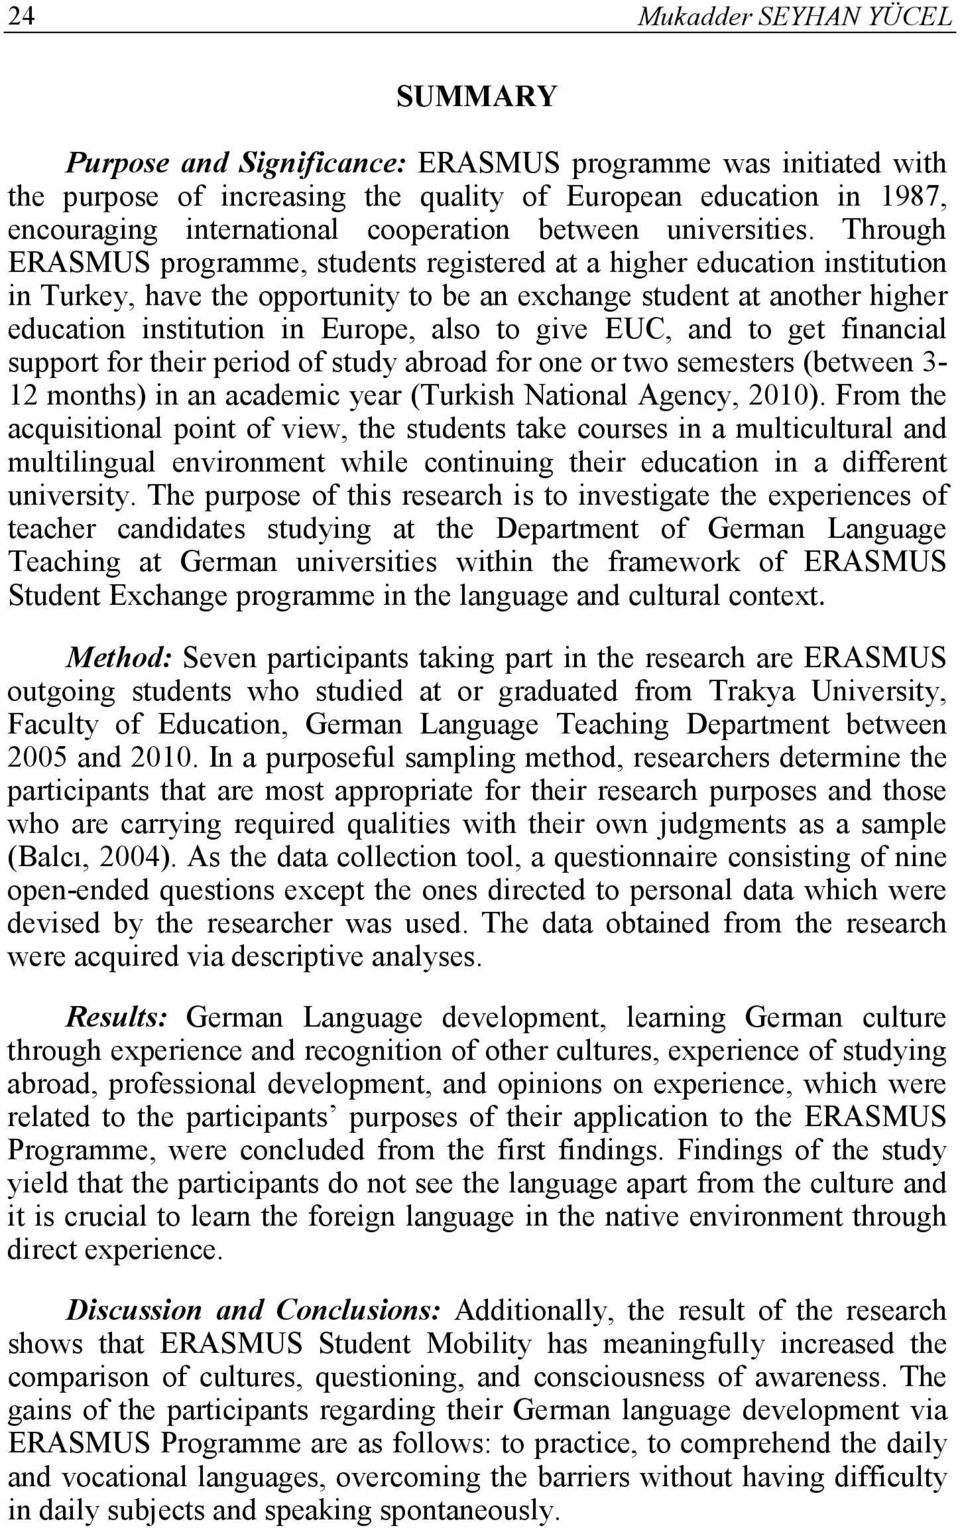 Through ERASMUS programme, students registered at a higher education institution in Turkey, have the opportunity to be an exchange student at another higher education institution in Europe, also to